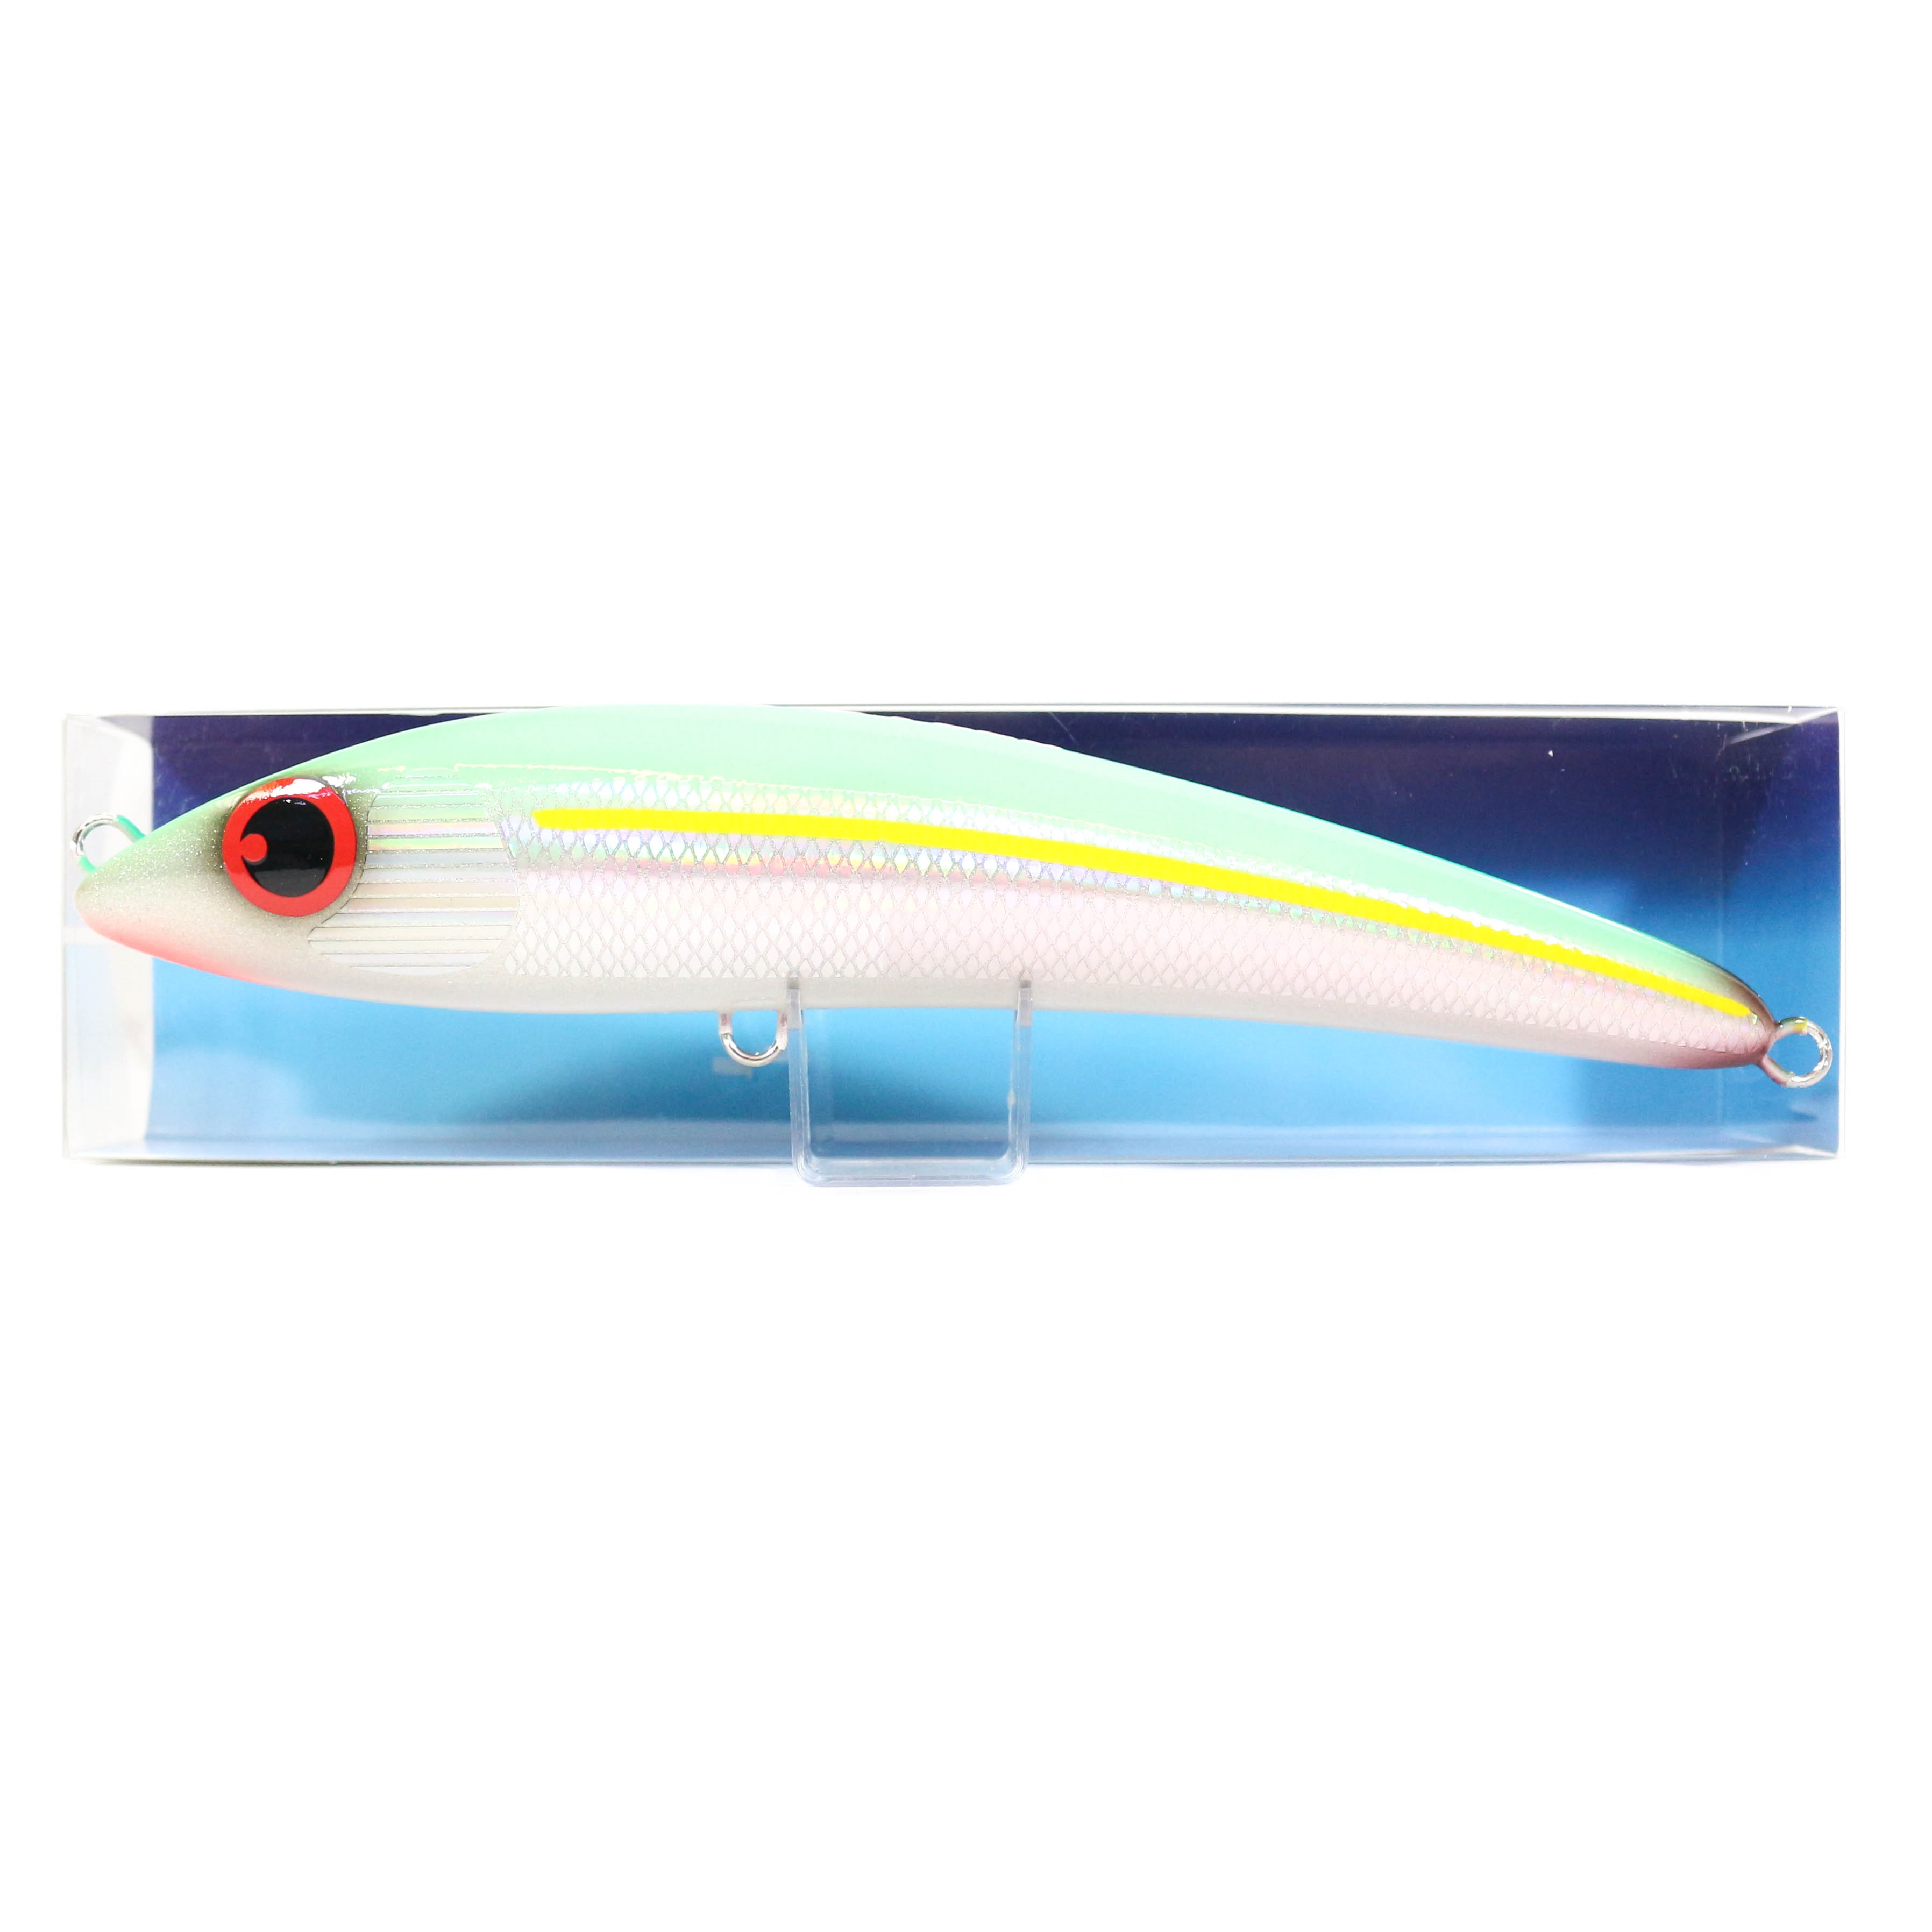 Sale FCL Labo Stick Bait JD-P 225F Floating Lure 100 grams BNF (3567)